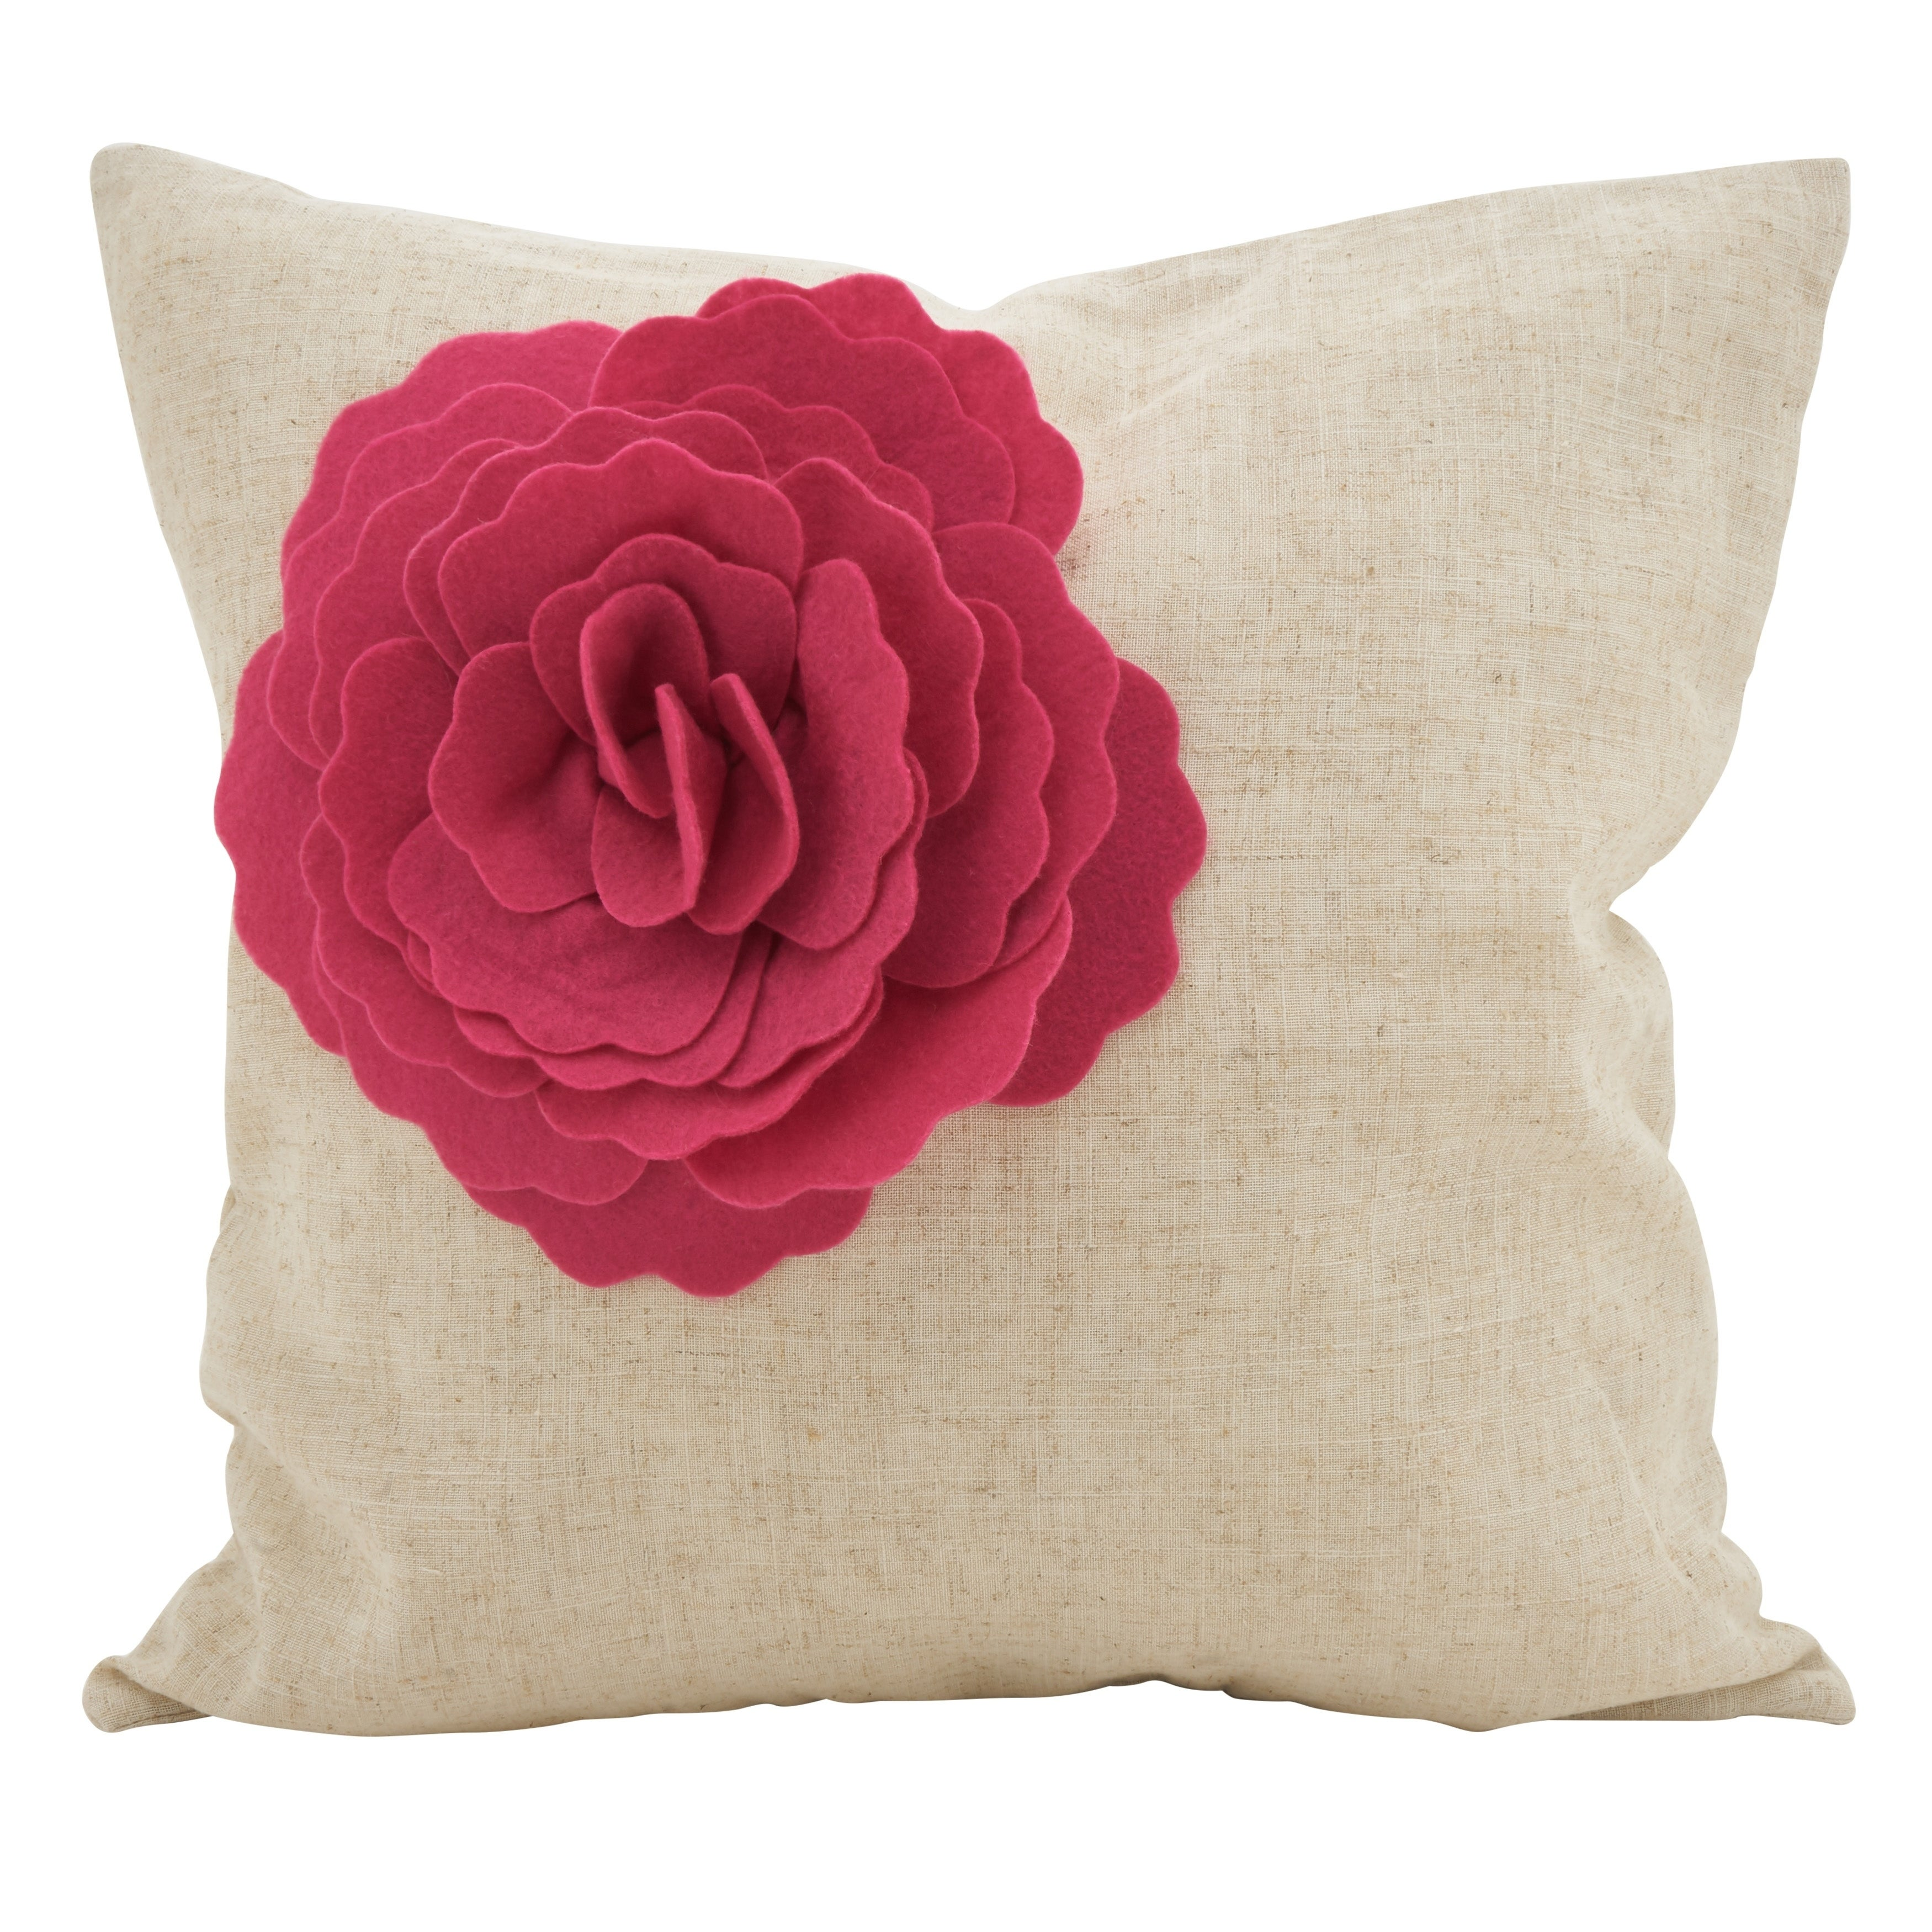 Buy Pink Floral Throw Pillows Online At Overstock Our Best